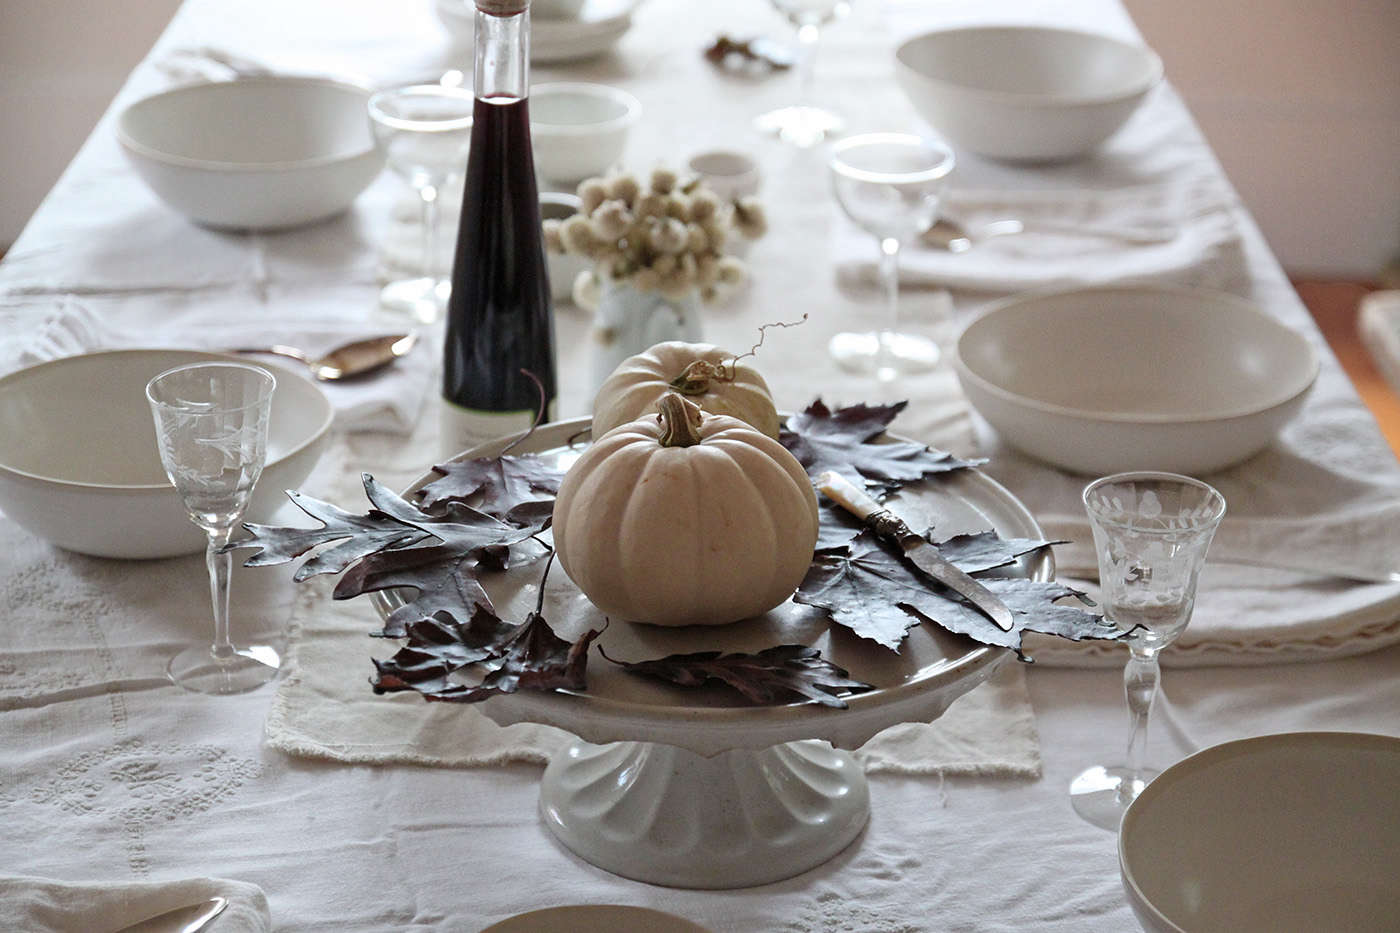 Halloween%20table%20with%20Black%20Leaves%2C%20leaf%20centerpiece%2C%20by%20Justine%20Hand%20for%20Remodelista